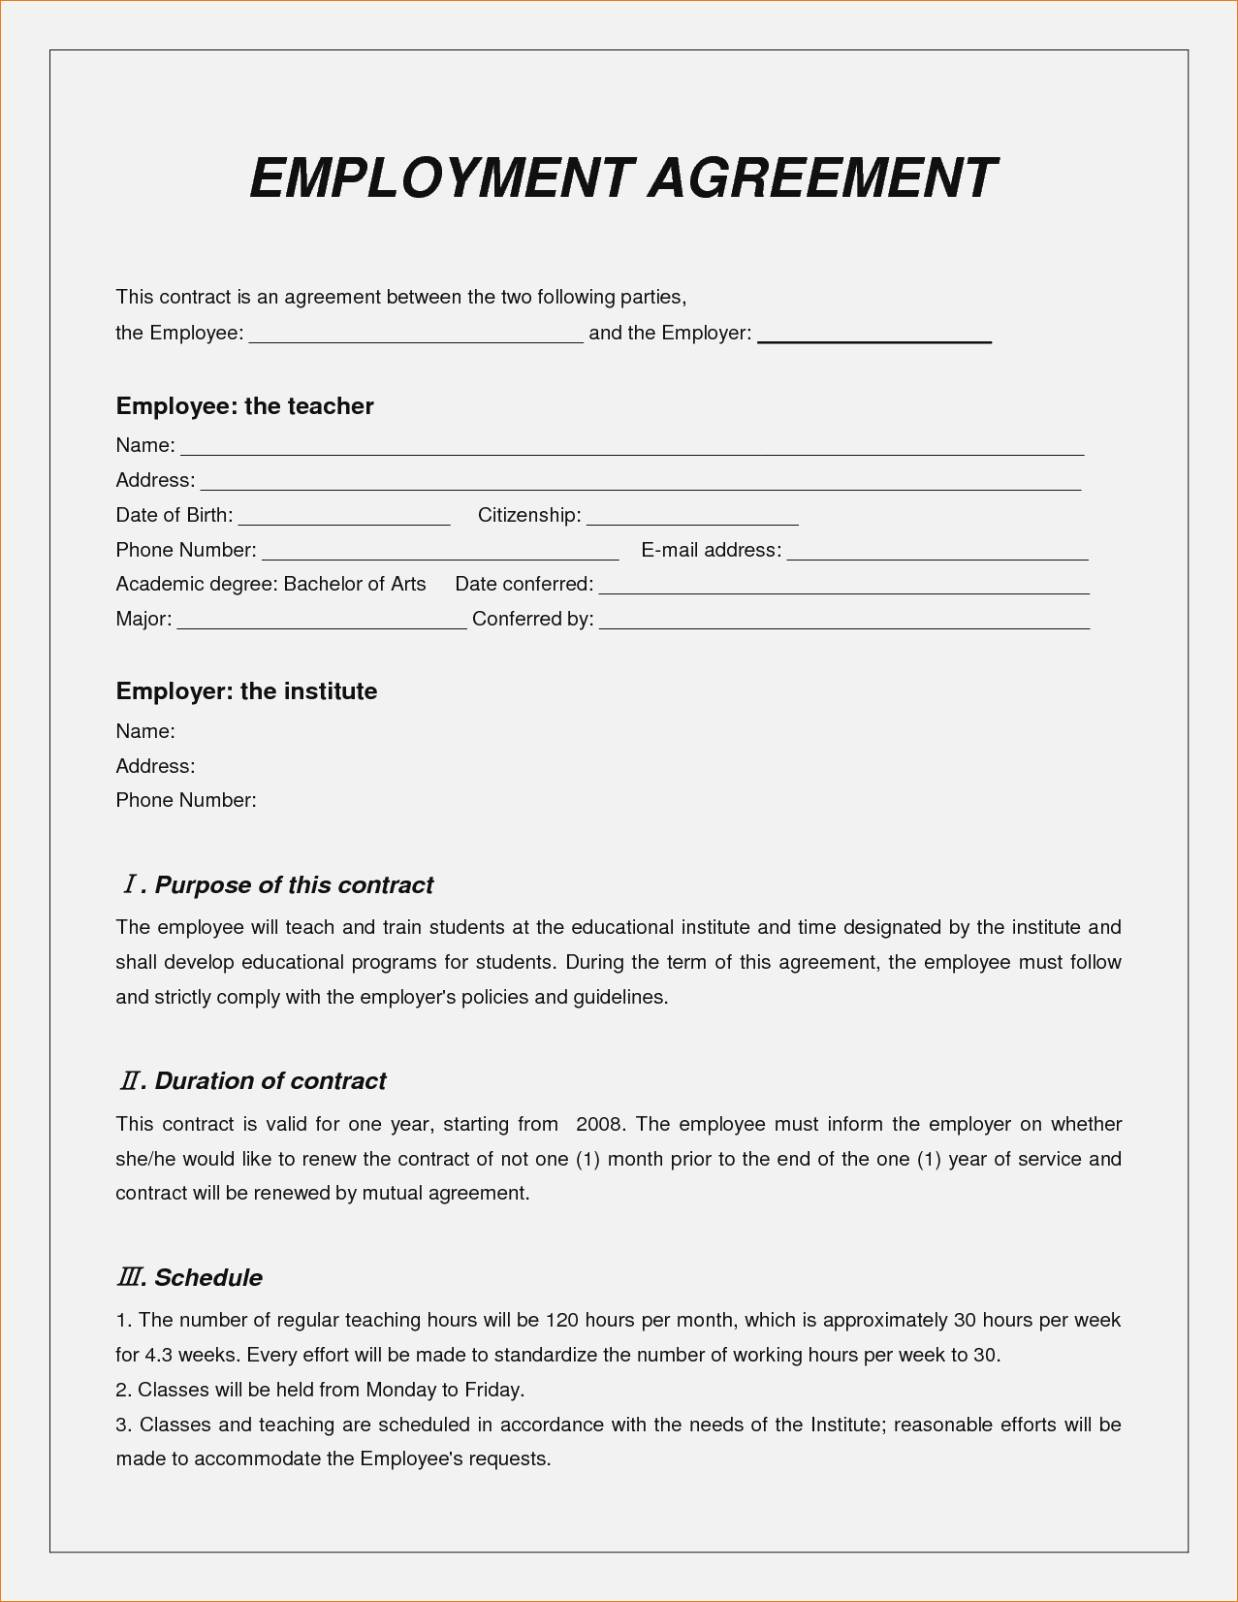 Wage Agreement Form